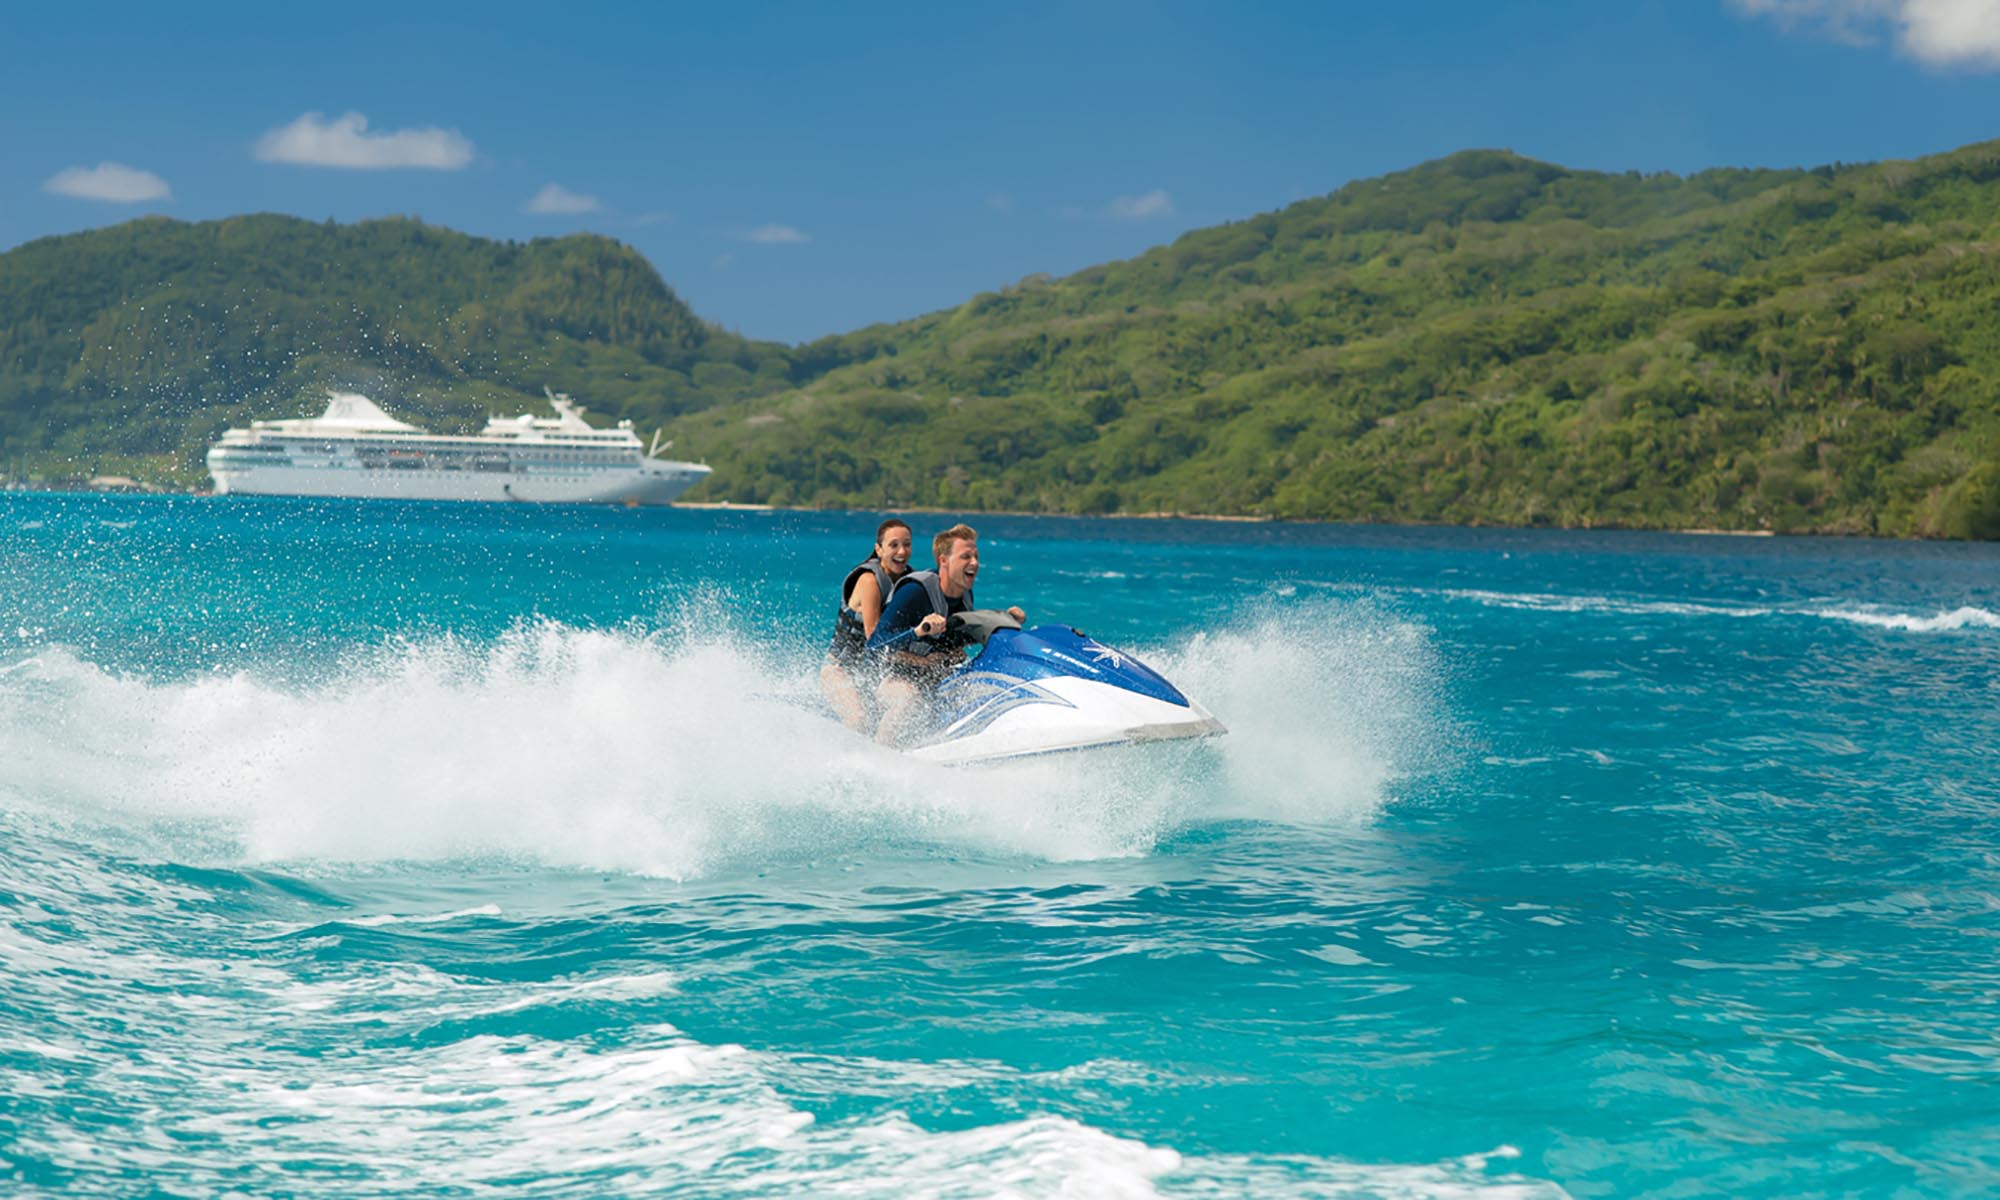 Paul Gauguin Cruise, Jet Skiing on Huahine